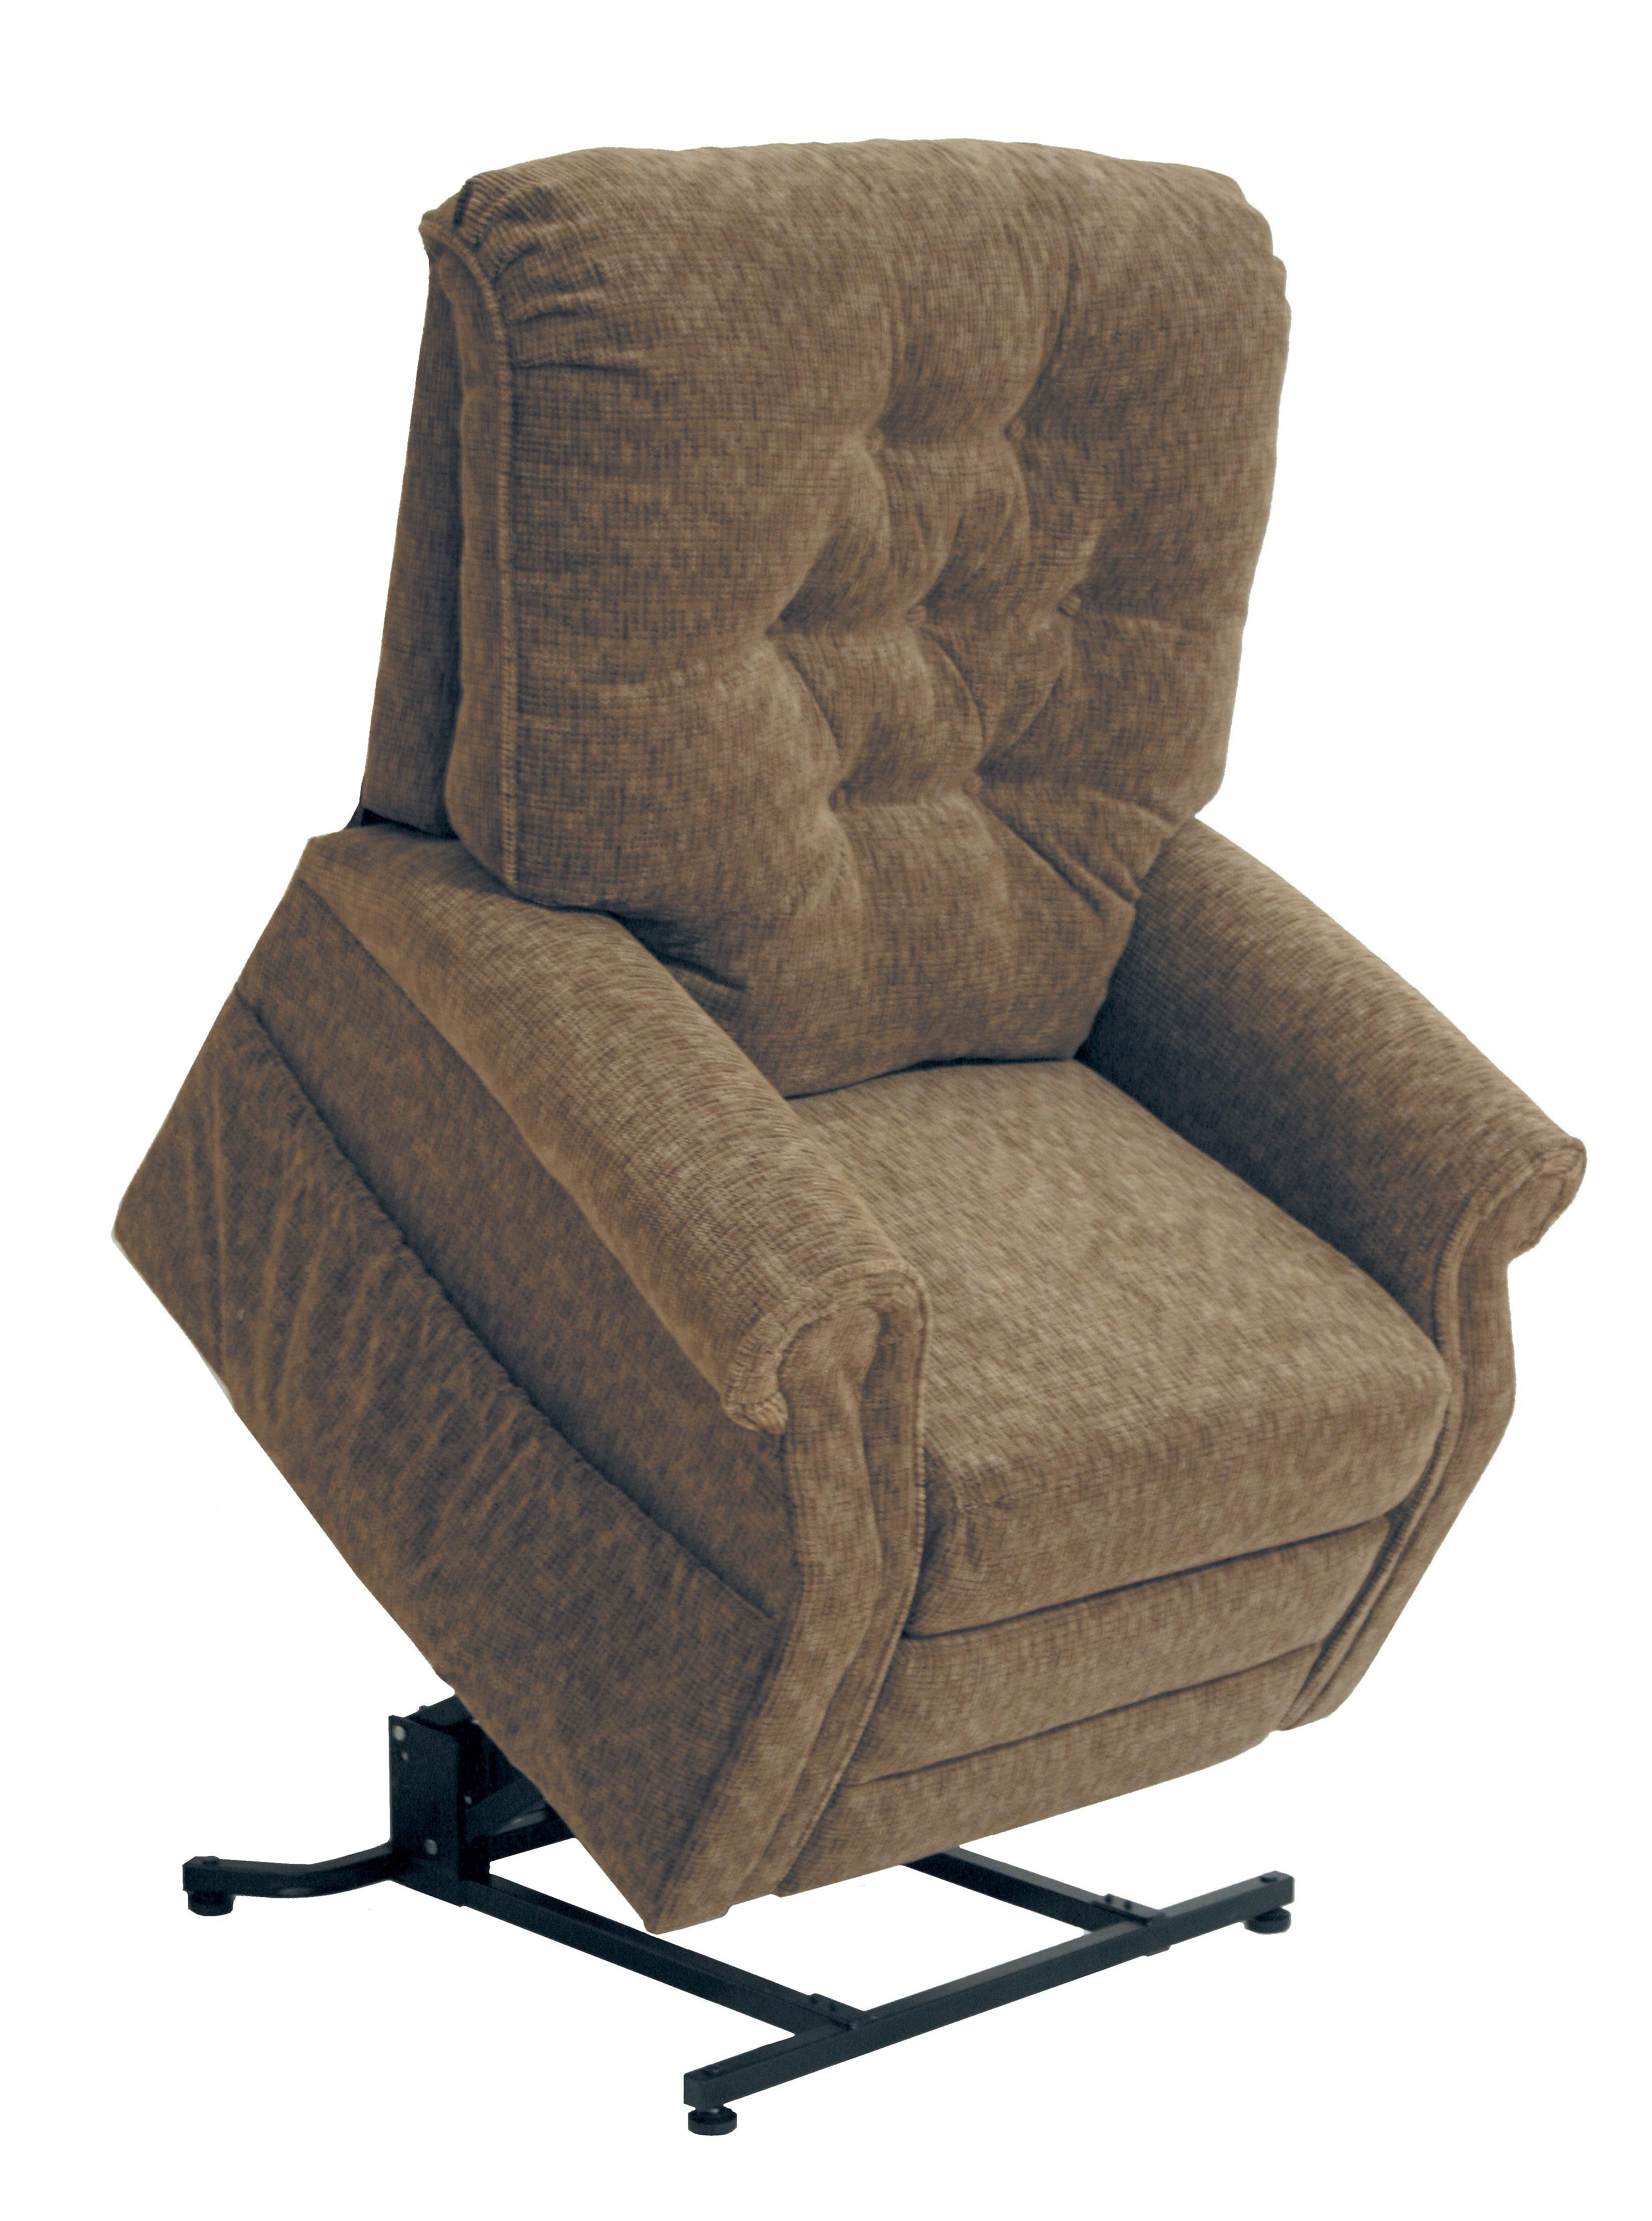 power lift recliners on sale near me Lift chairs, Lift